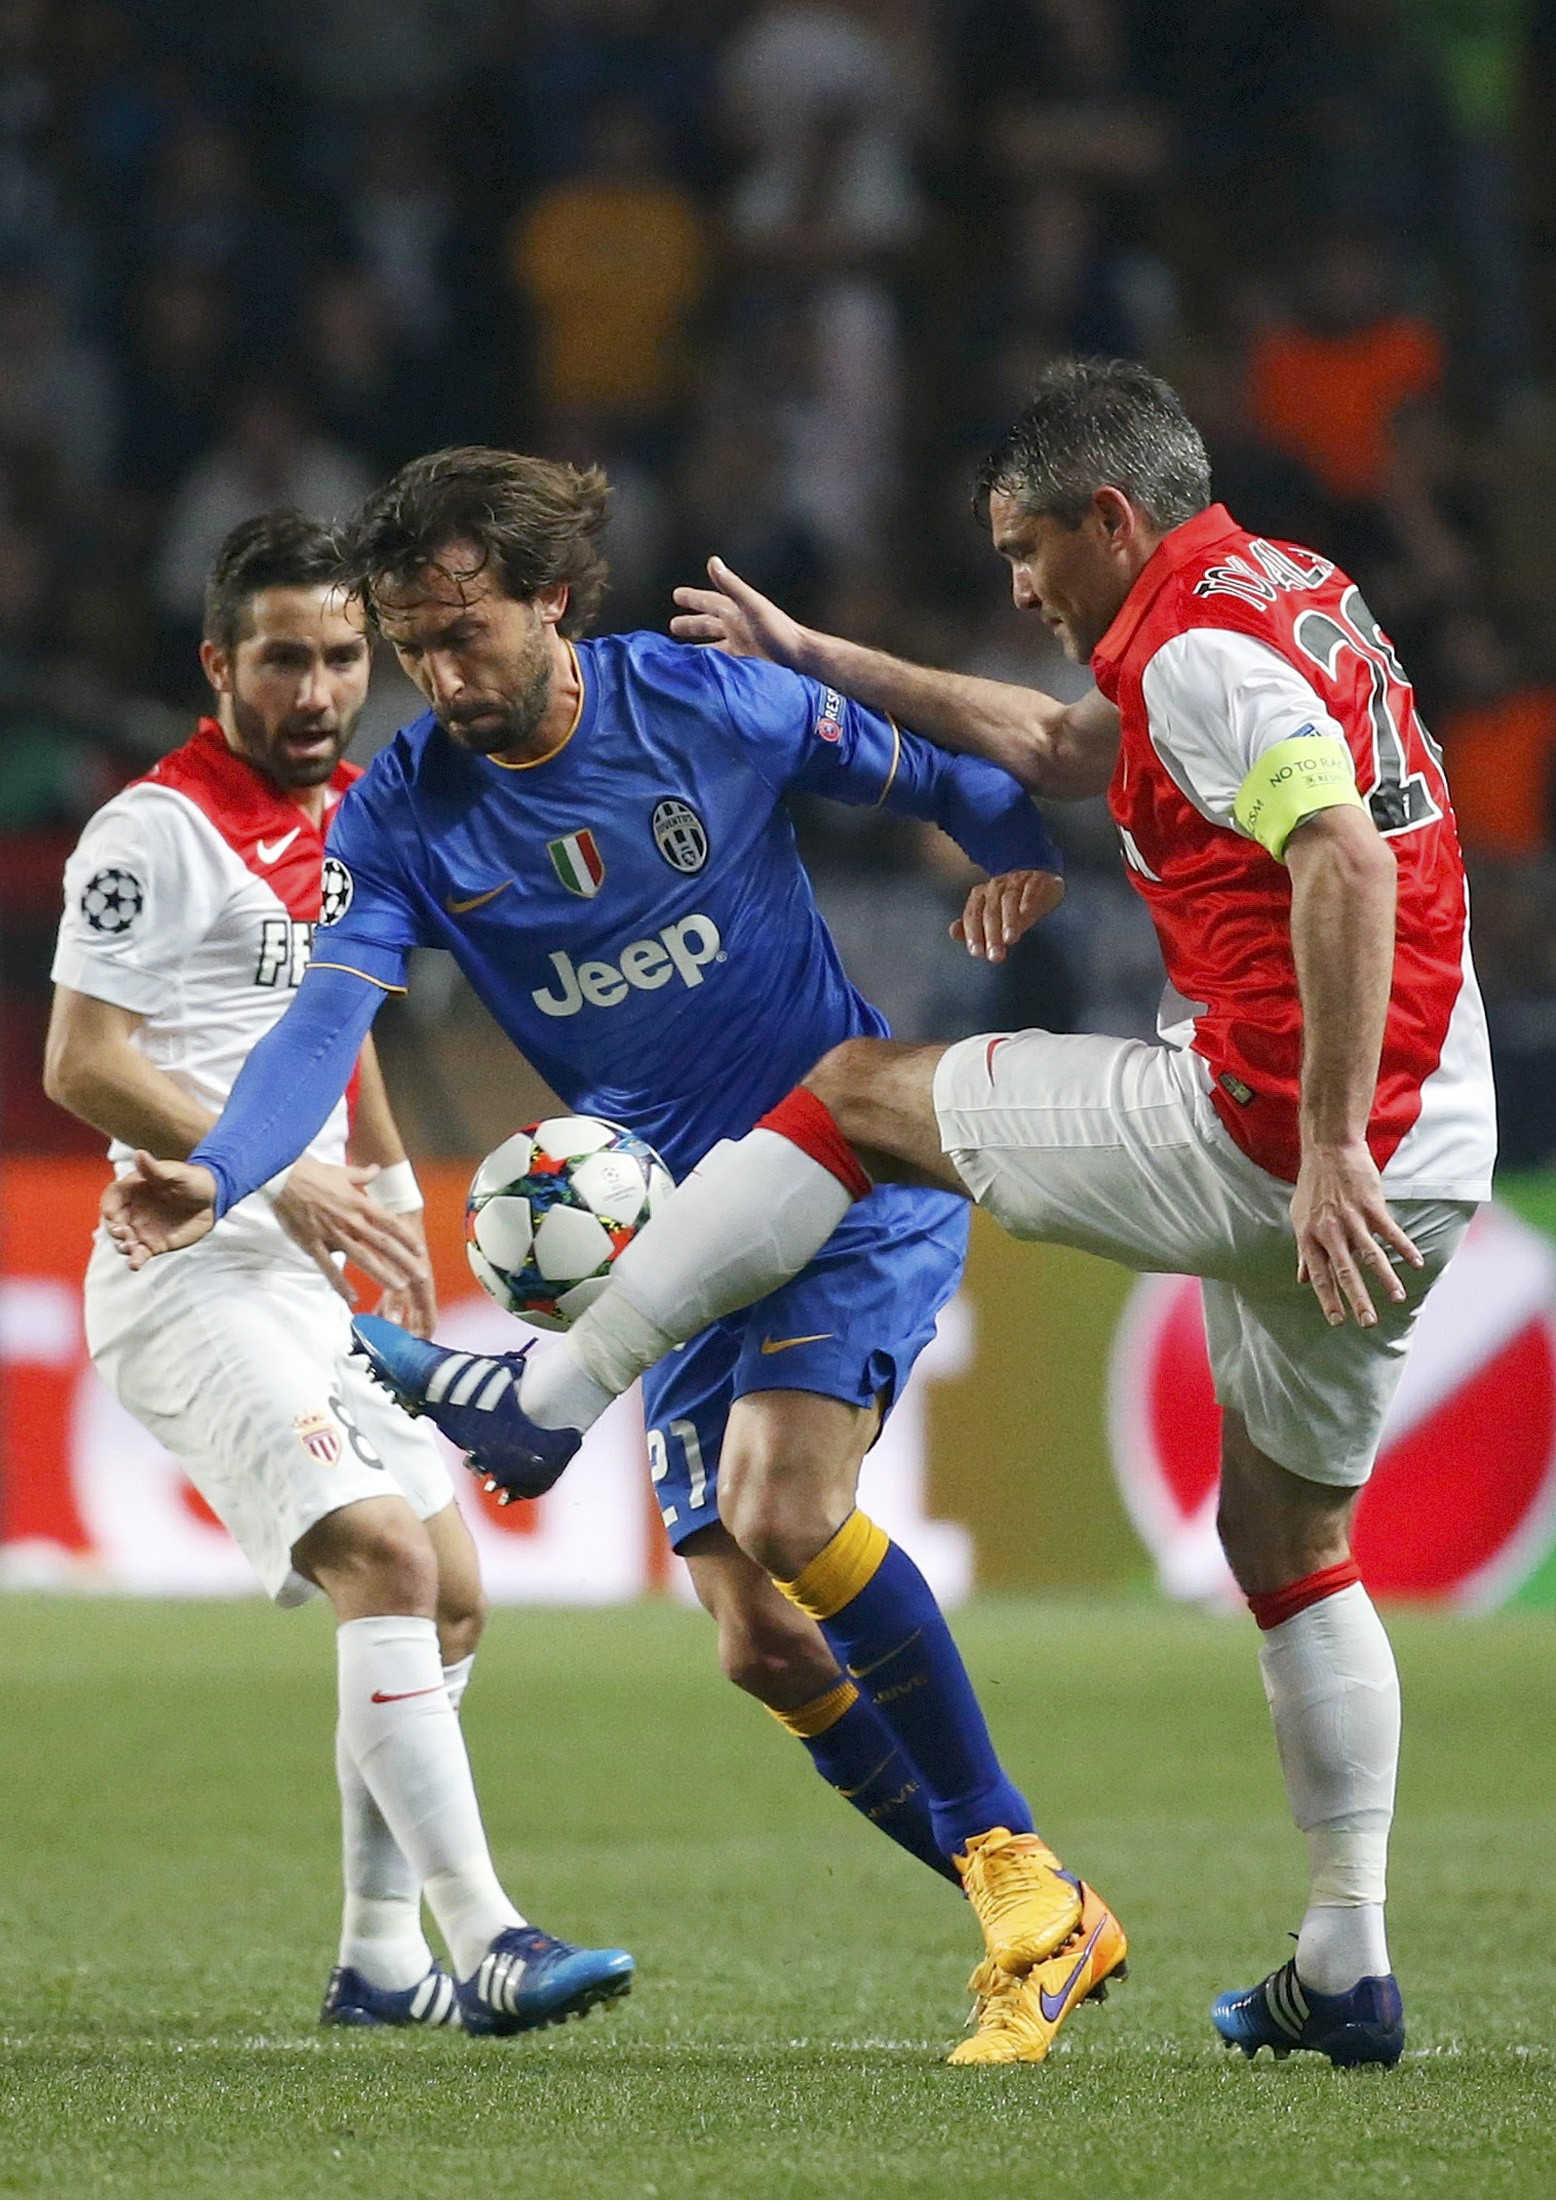 Monaco's Moutinho and Toulalan challenge Juventus Pirlo during their quarter-final second leg Champions League soccer match at the Louis II stadium in Monaco